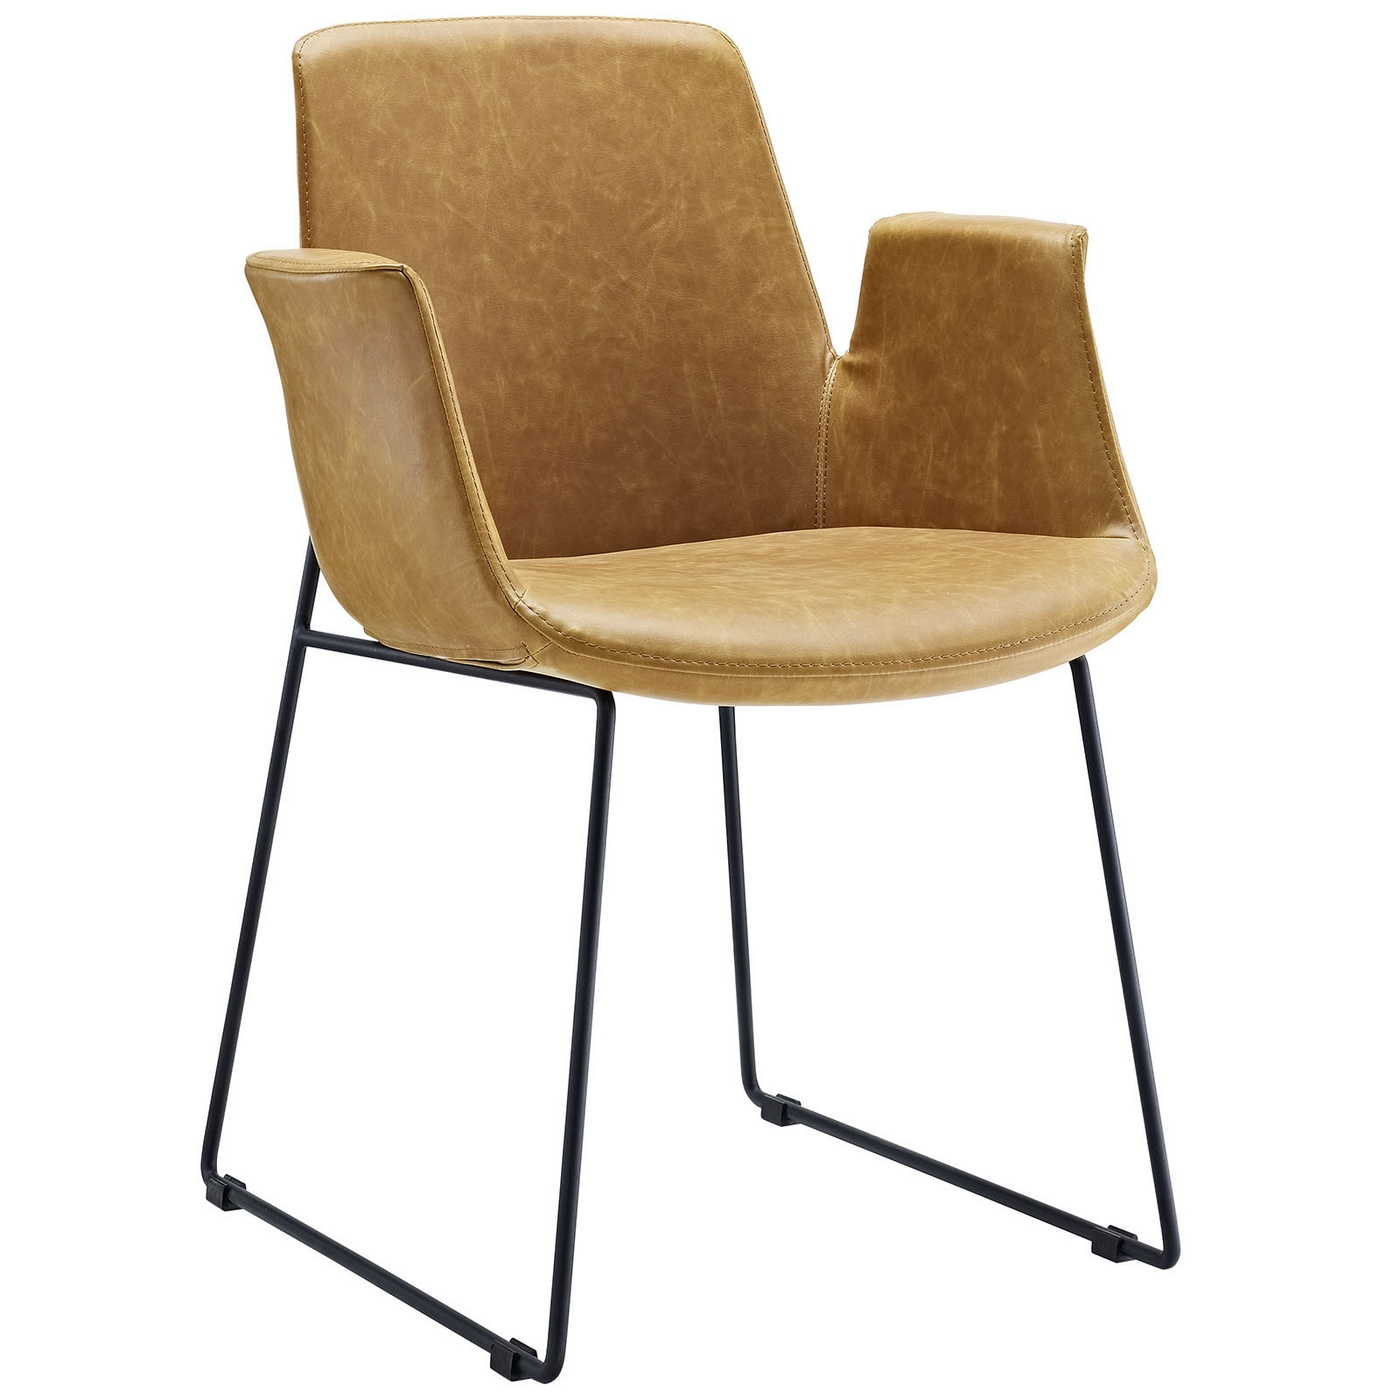 Mid Century Modern Aloft Faux Leather Winged Arm Chair W